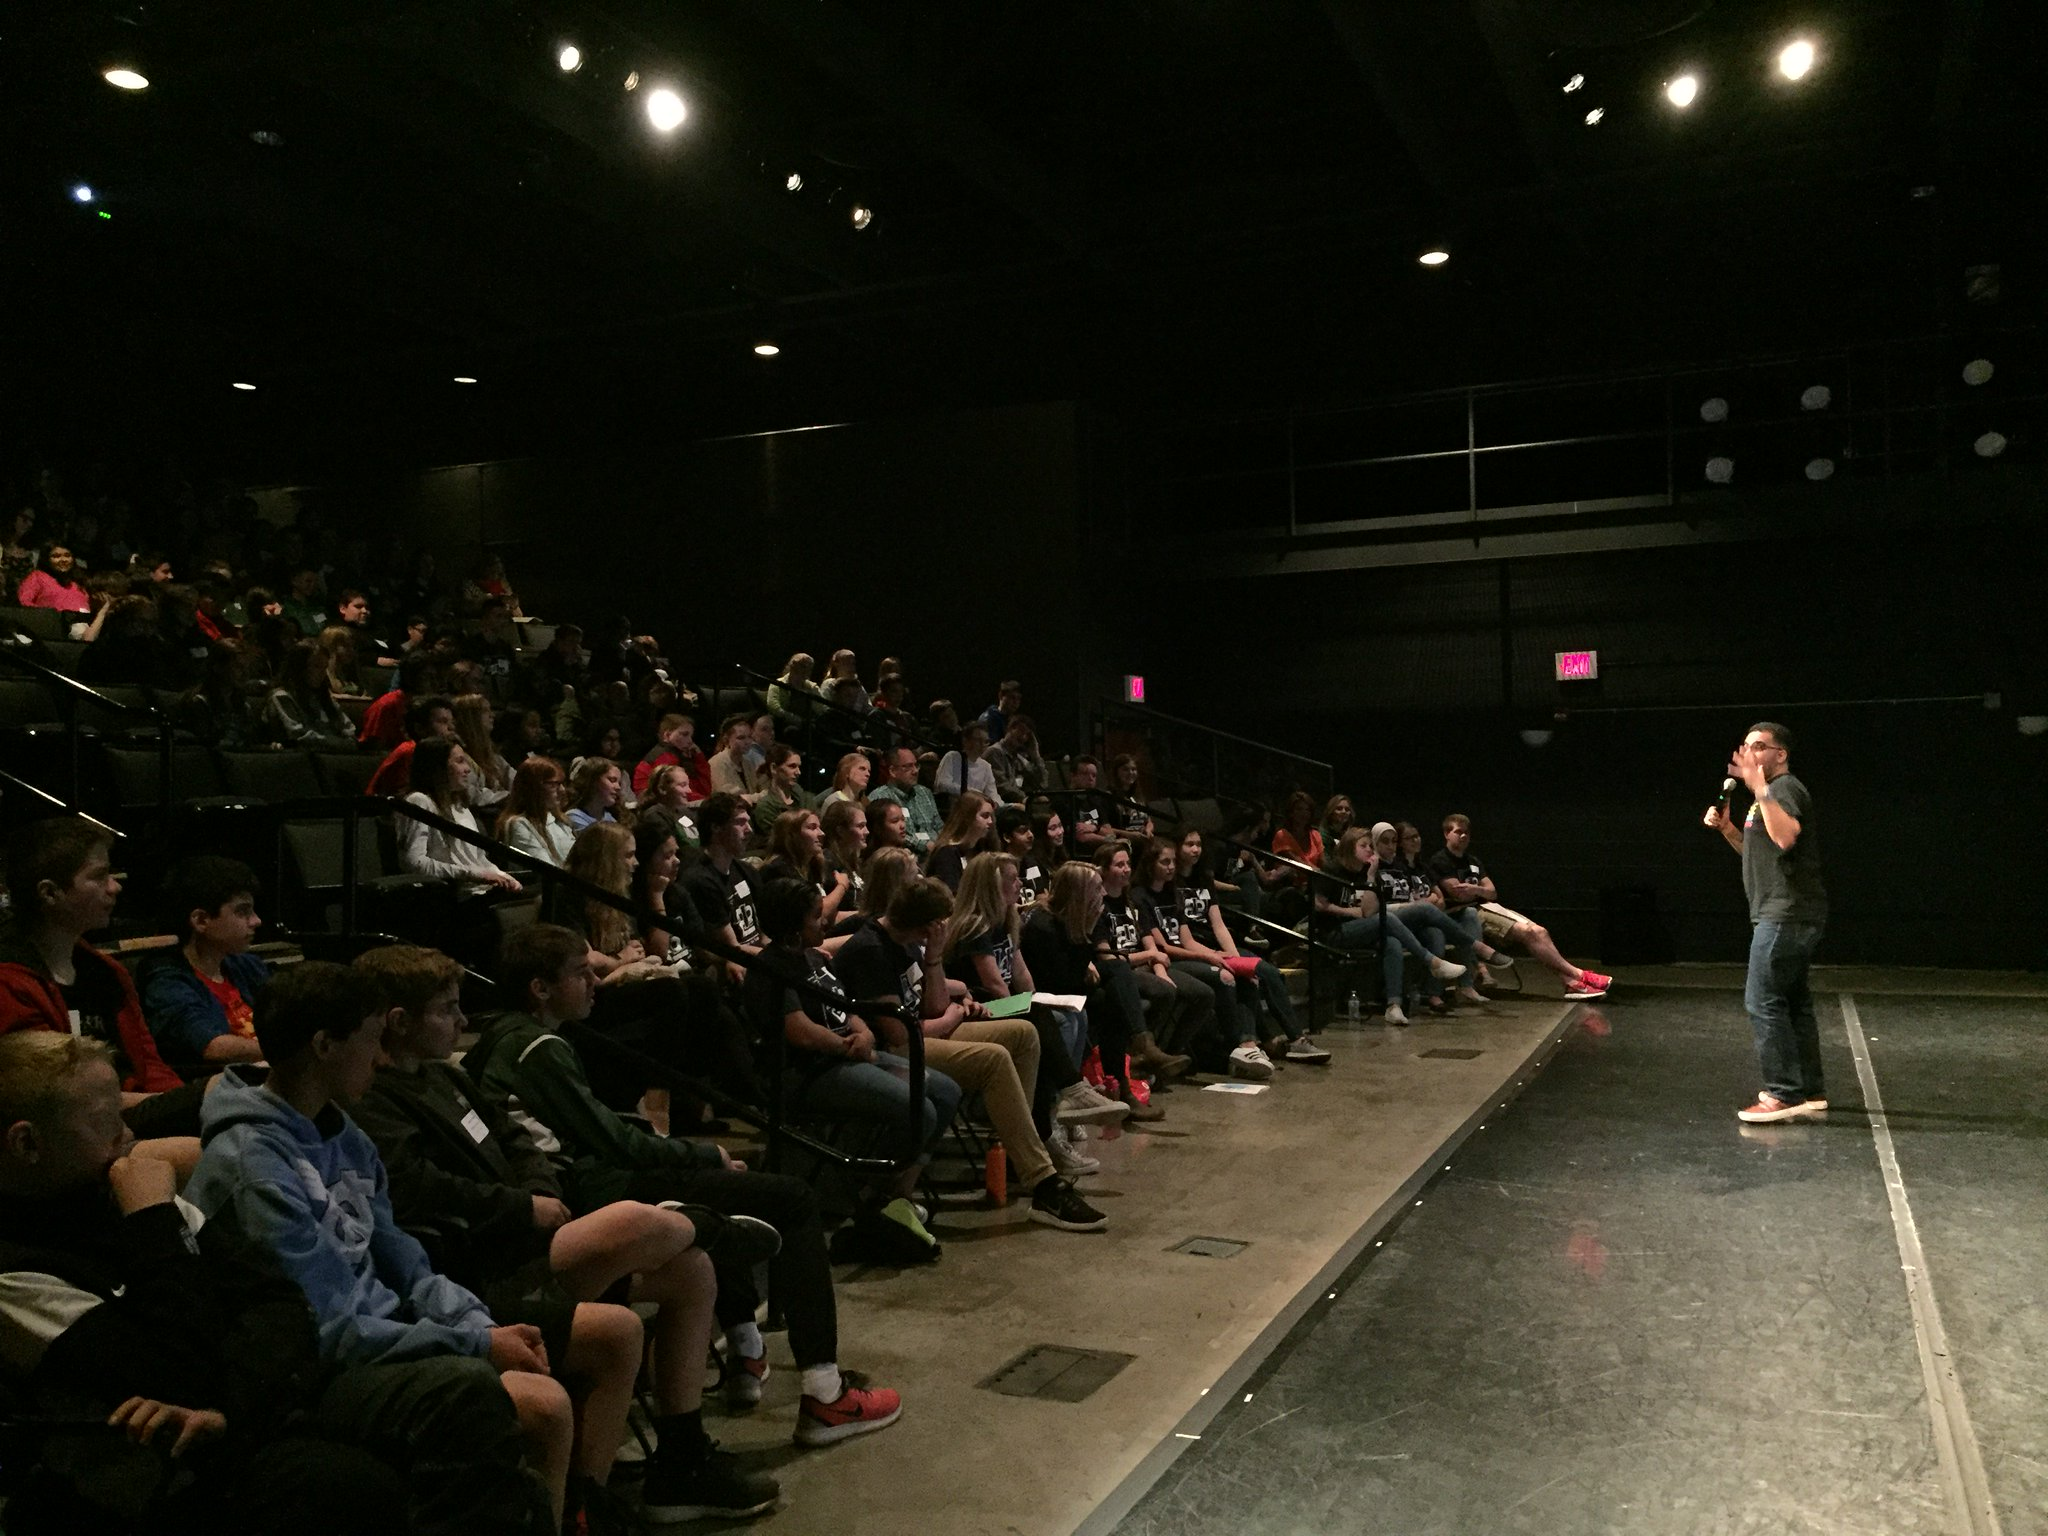 """About 185 middle & high school students who have pledged to be drug free are participating in """"Learn to Lead"""" today. #theDublinDifference https://t.co/arViz3wQS3"""